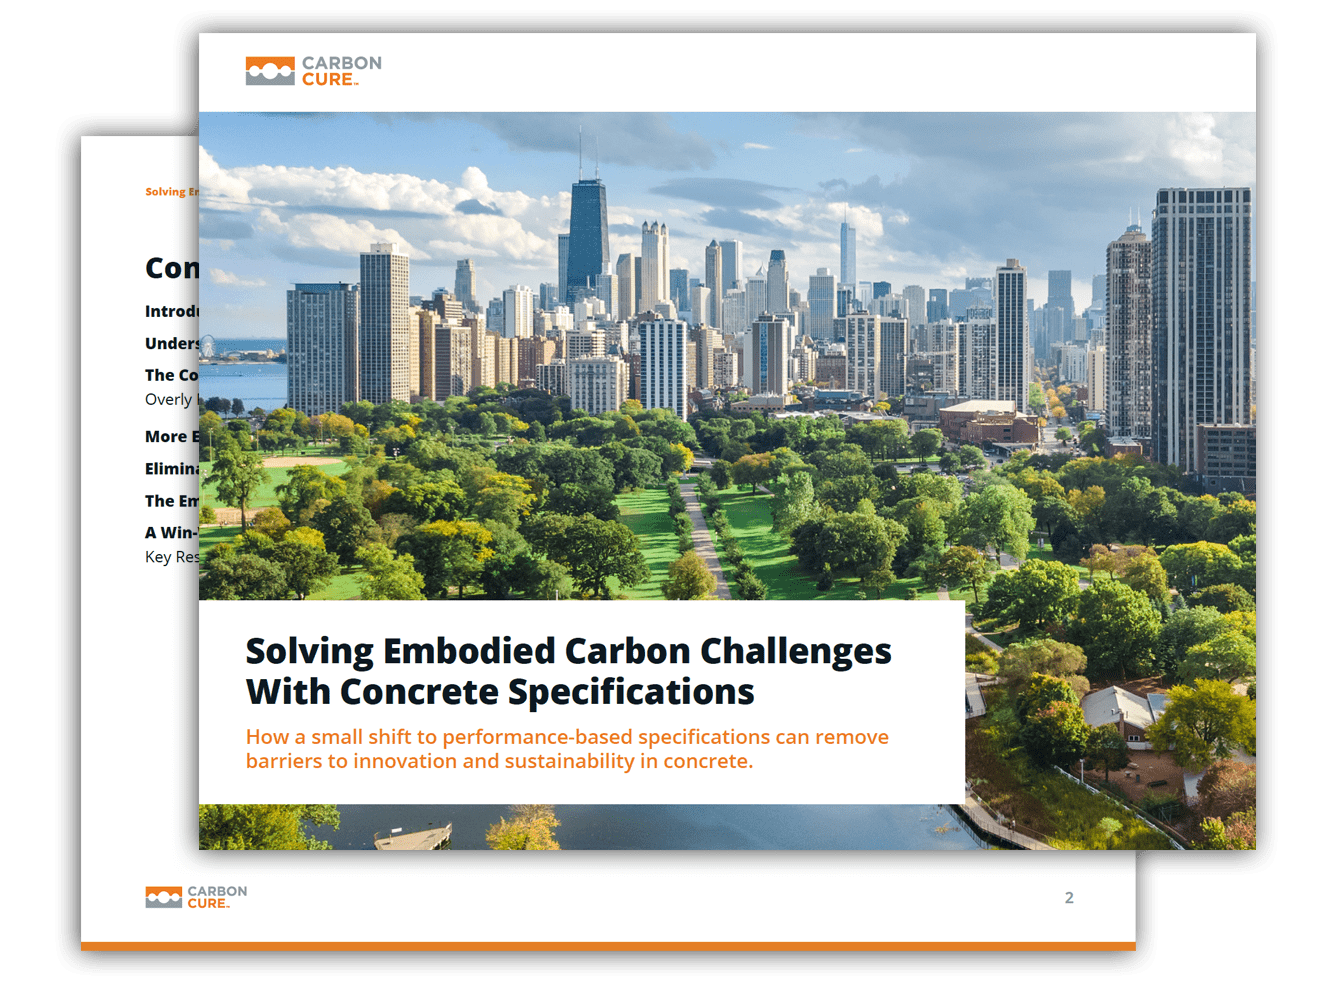 Solving Embodied Carbon Challenges with Concrete Specifications